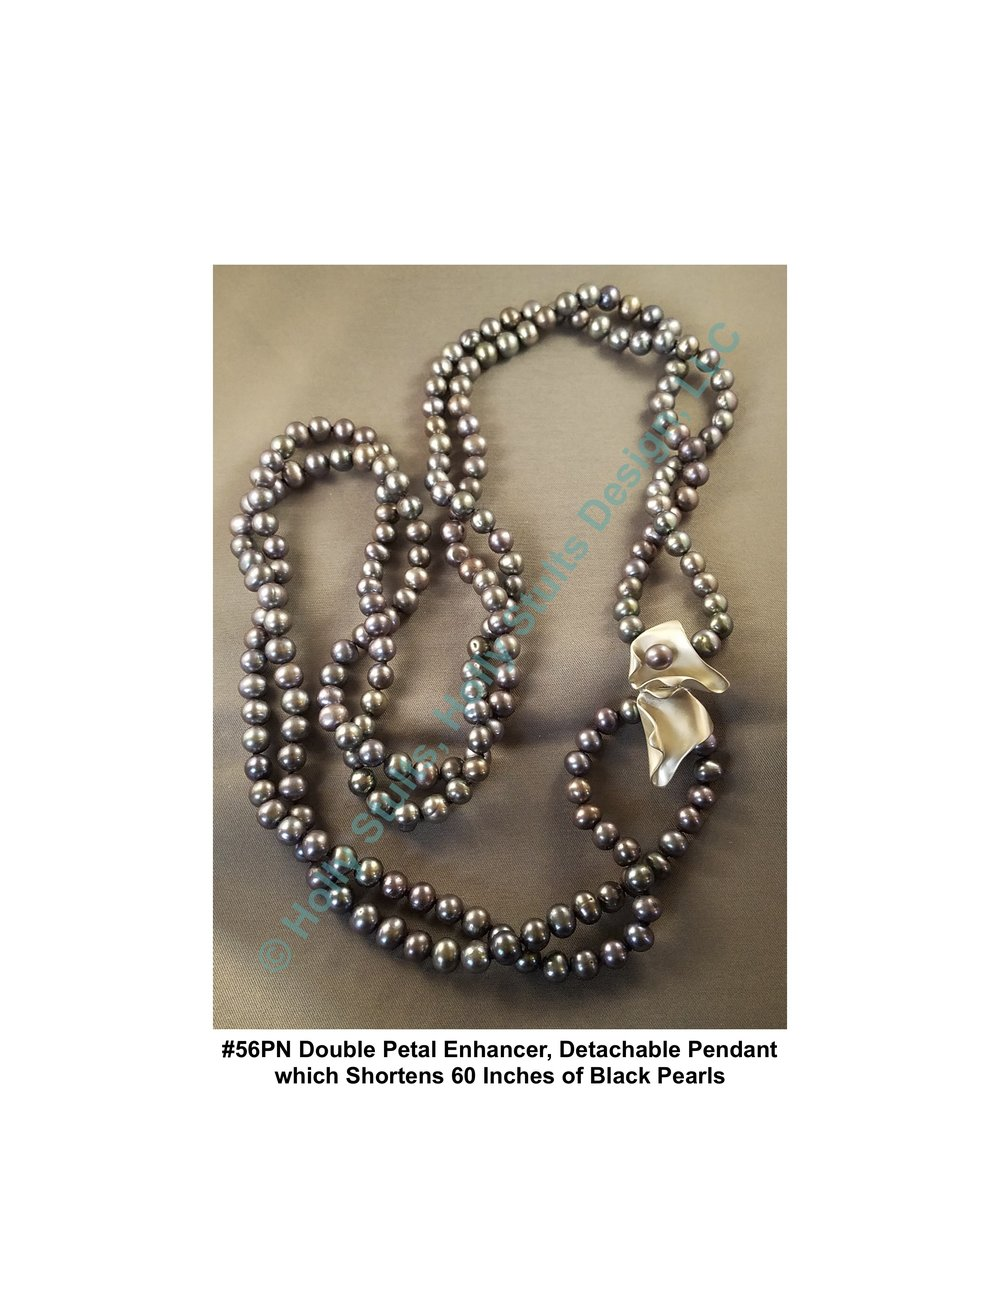 #56PN Double Petal Enhancer, Detachable Pendant which Shortens 60 Inches of Black Pearls.jpg